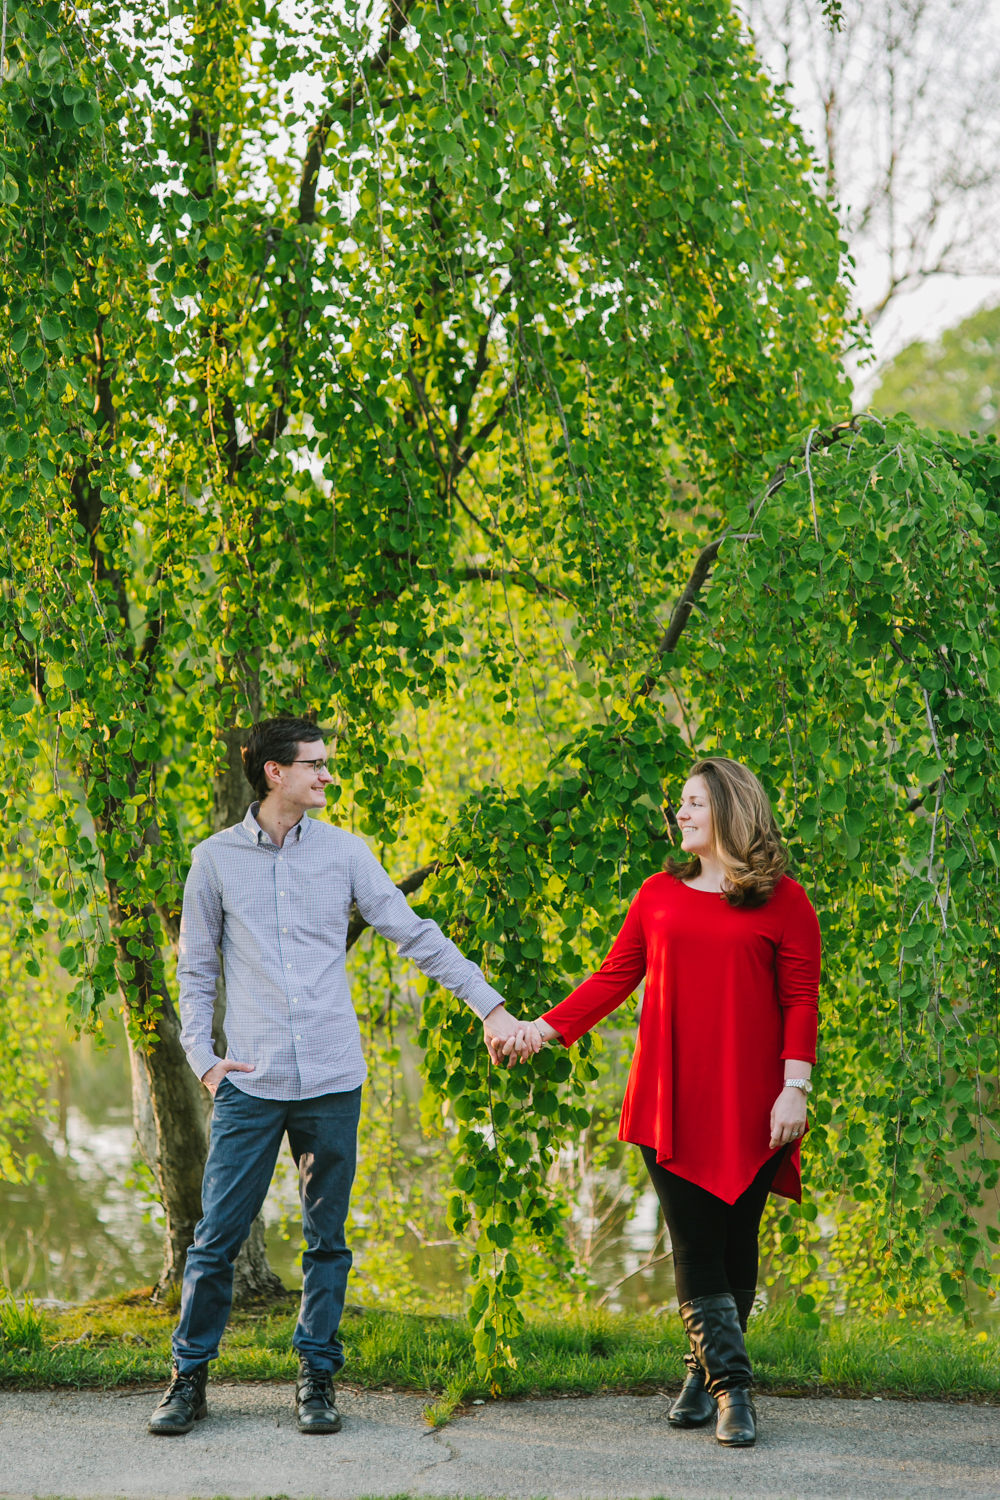 Emily Tebbetts Photography - Boston Jamaica Plain Arnold Arboretum Engagement Photos Wedding Photographer-11.jpg